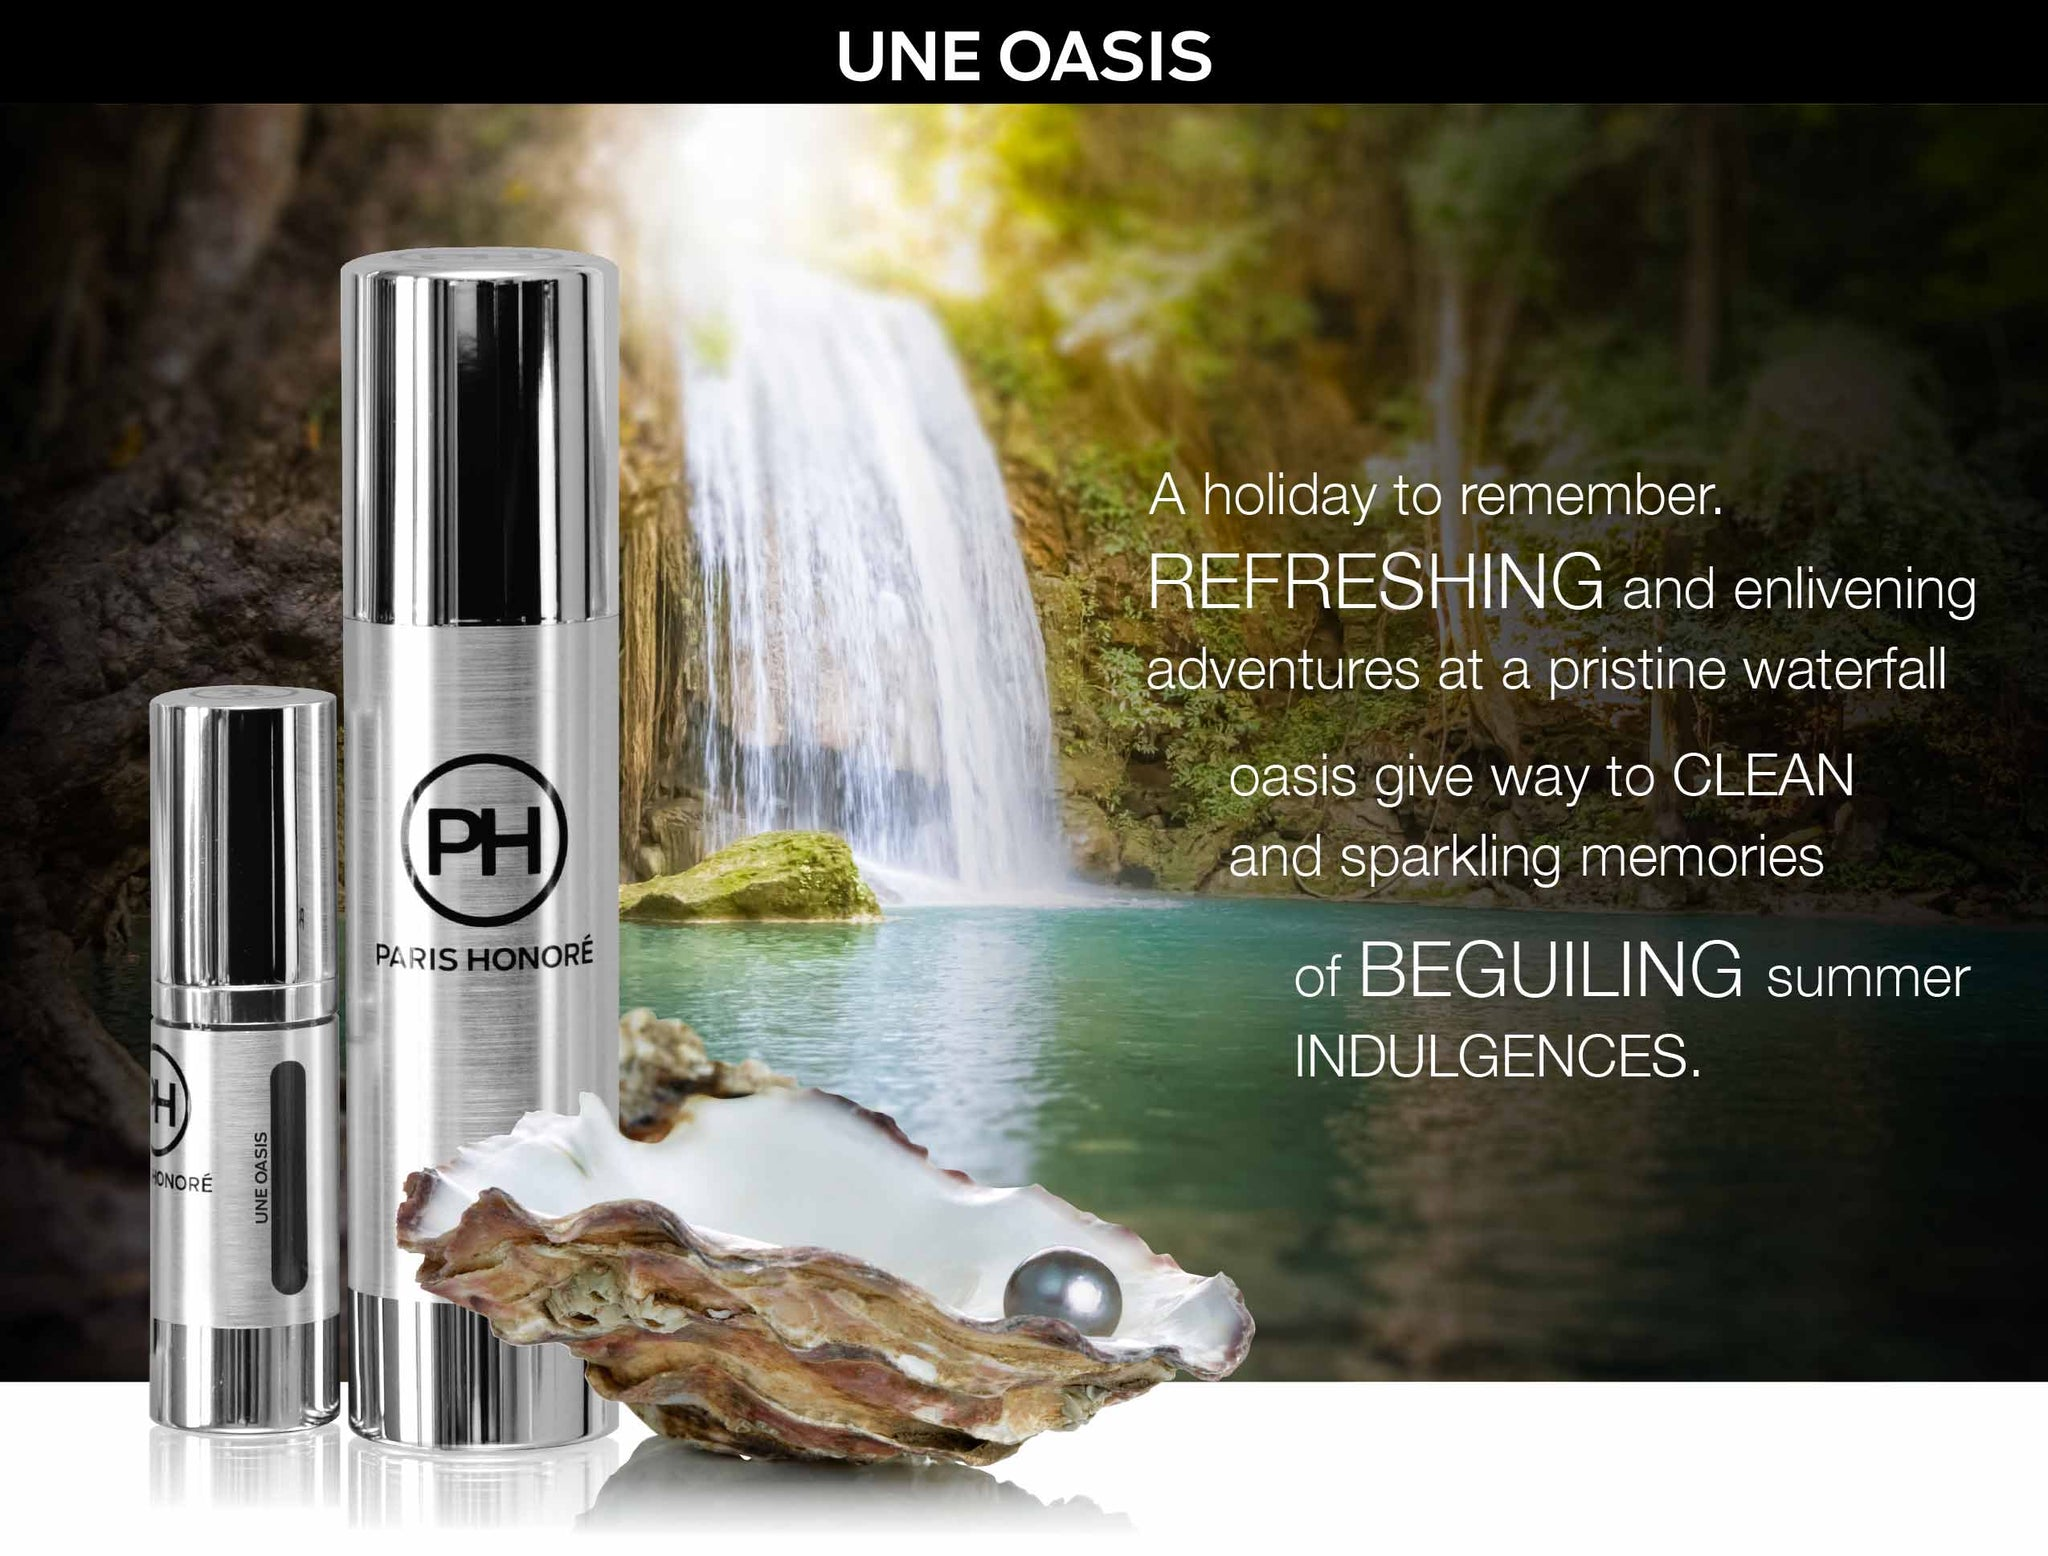 UNE OASIS: a holiday to remember. Refreshing and enlivening adventures at a pristine waterfall oasis give way to clean and sparkling memories of beguiling summer indulgences - PARIS HONORE LUXURY ORGANIC SKINCARE